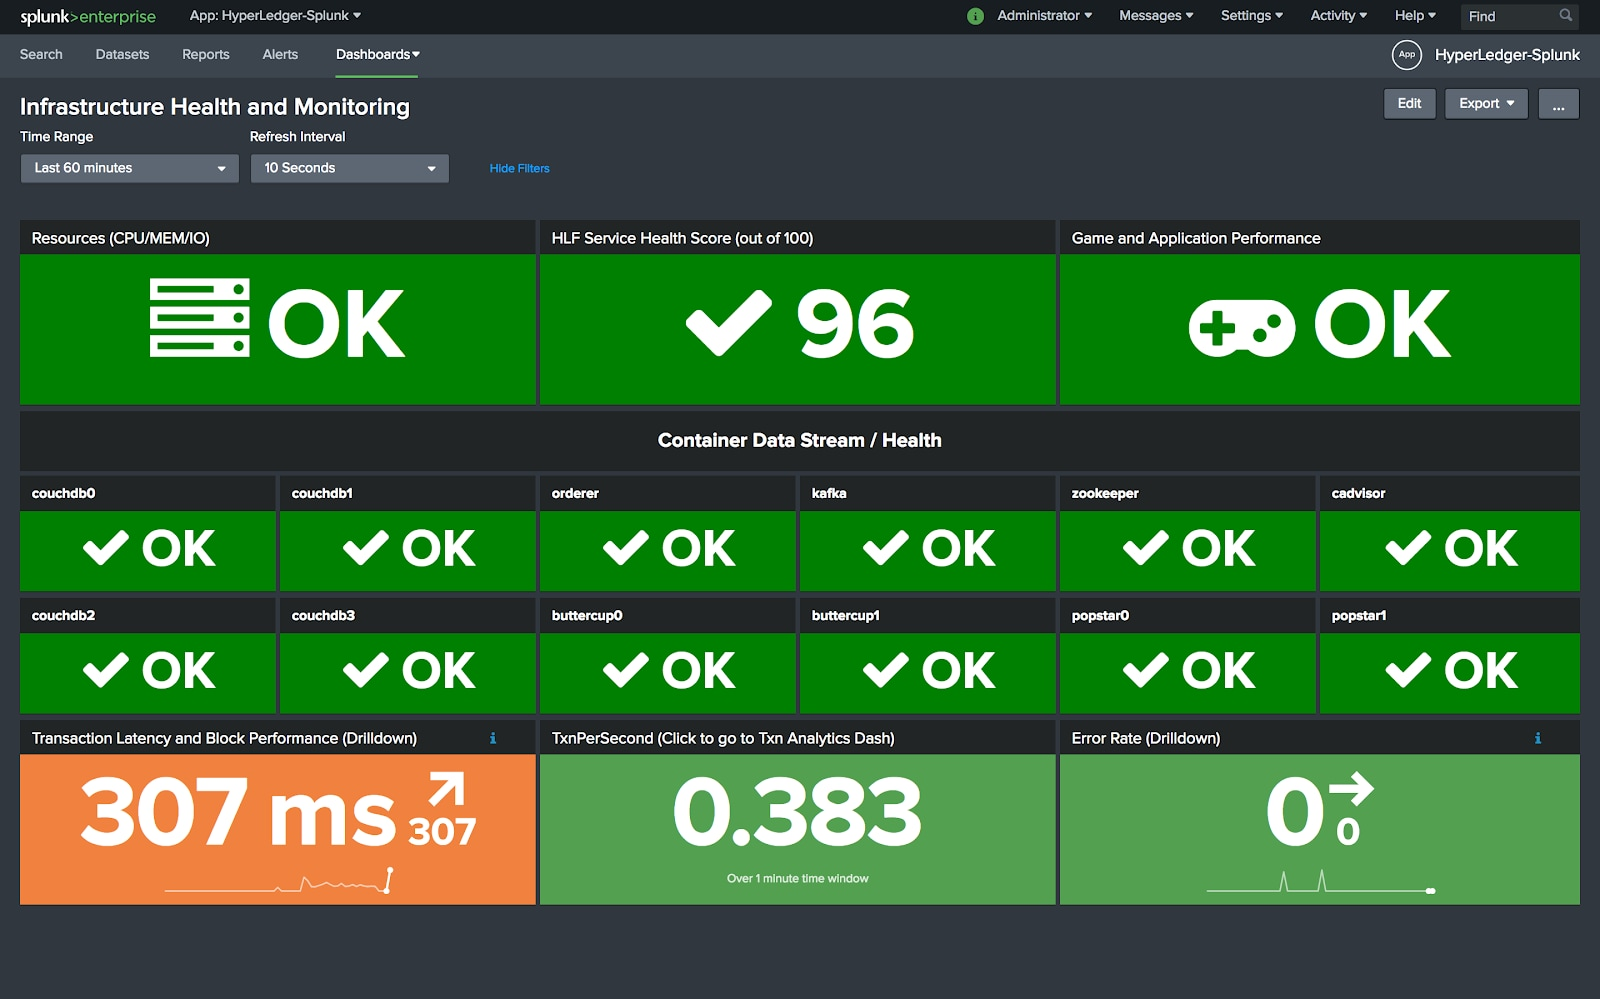 A Preview of Splunk for Hyperledger Fabric